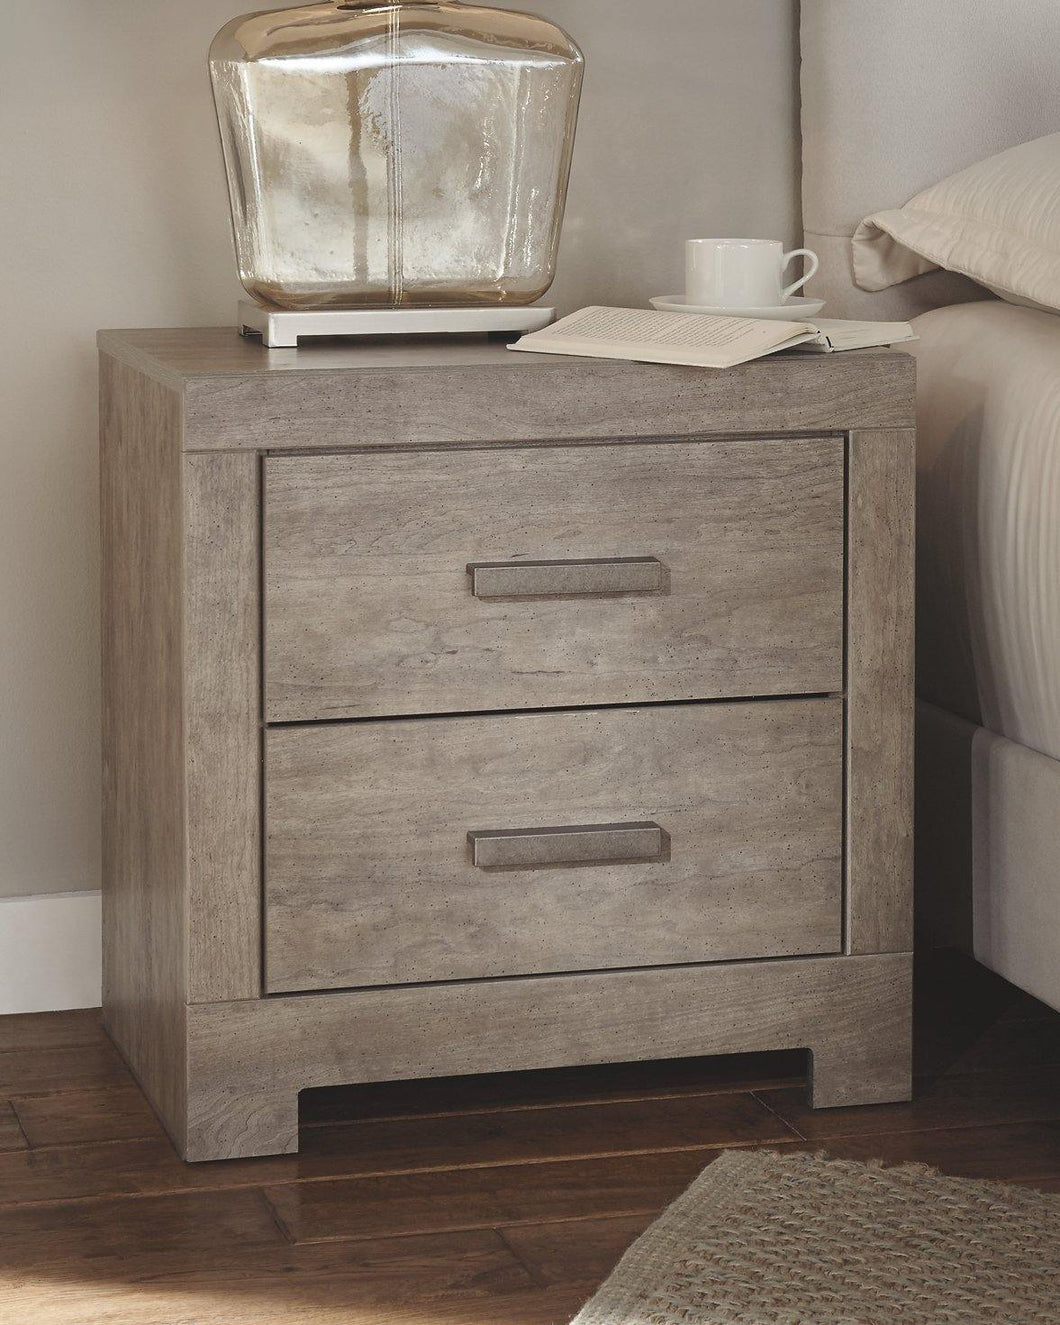 Culverbach Nightstand B070-92 By Ashley Furniture from sofafair